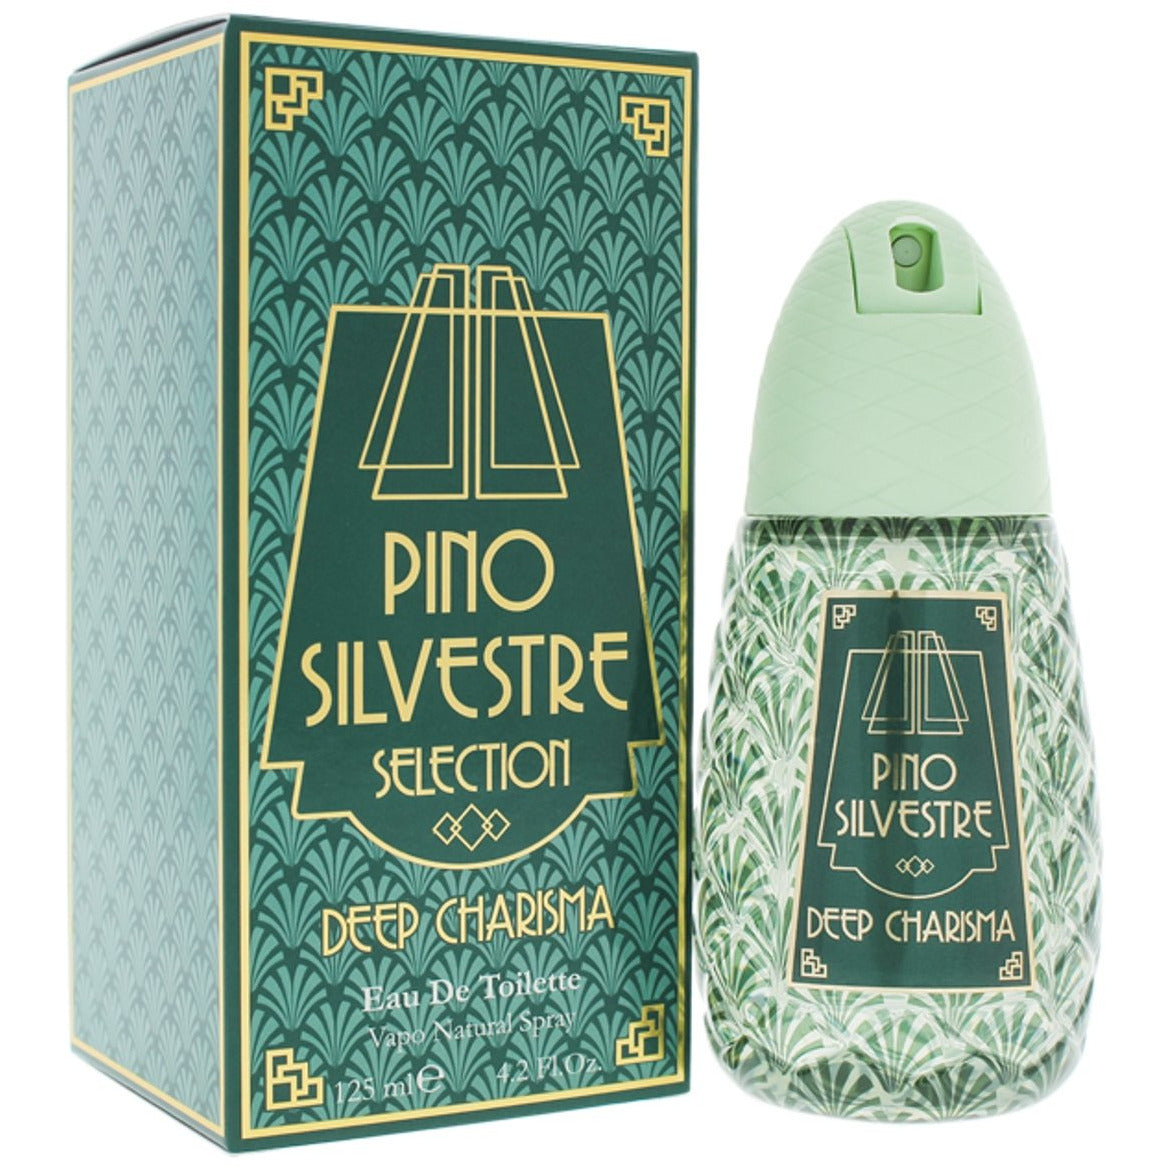 Selection Deep Charisma by Pino Silvestre cologne EDT 4.2 oz New in Box